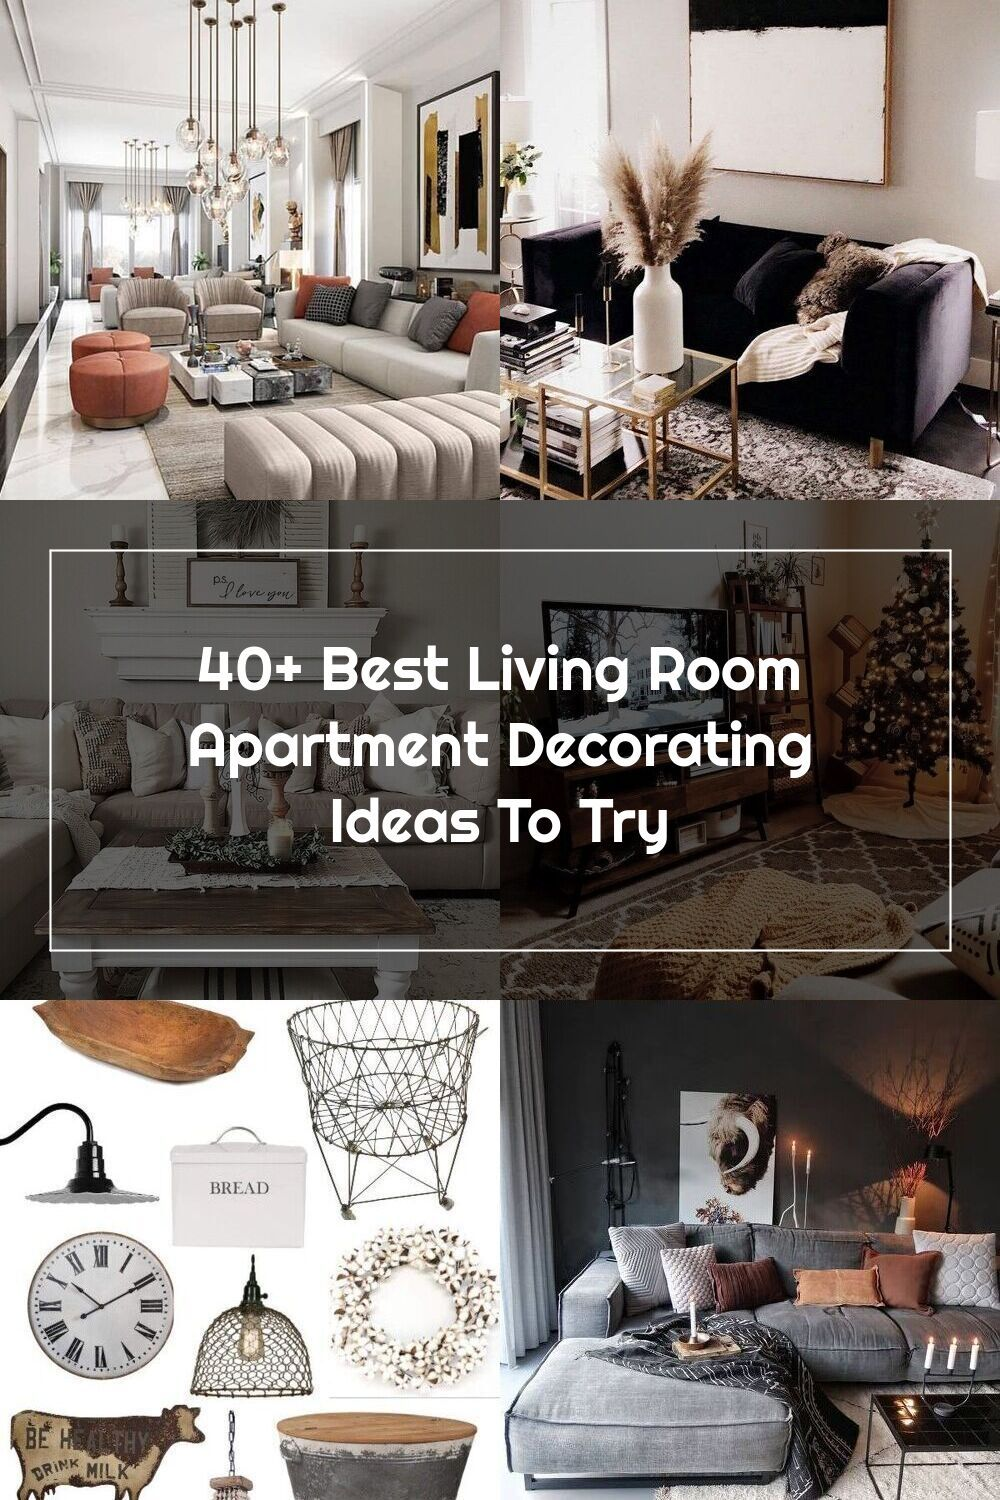 40 Best Living Room Apartment Decorating Ideas To Try Whether You Are Moving Into A New Apartment Or Home In 2020 Apartment Room Apartment Living Room Living Decor